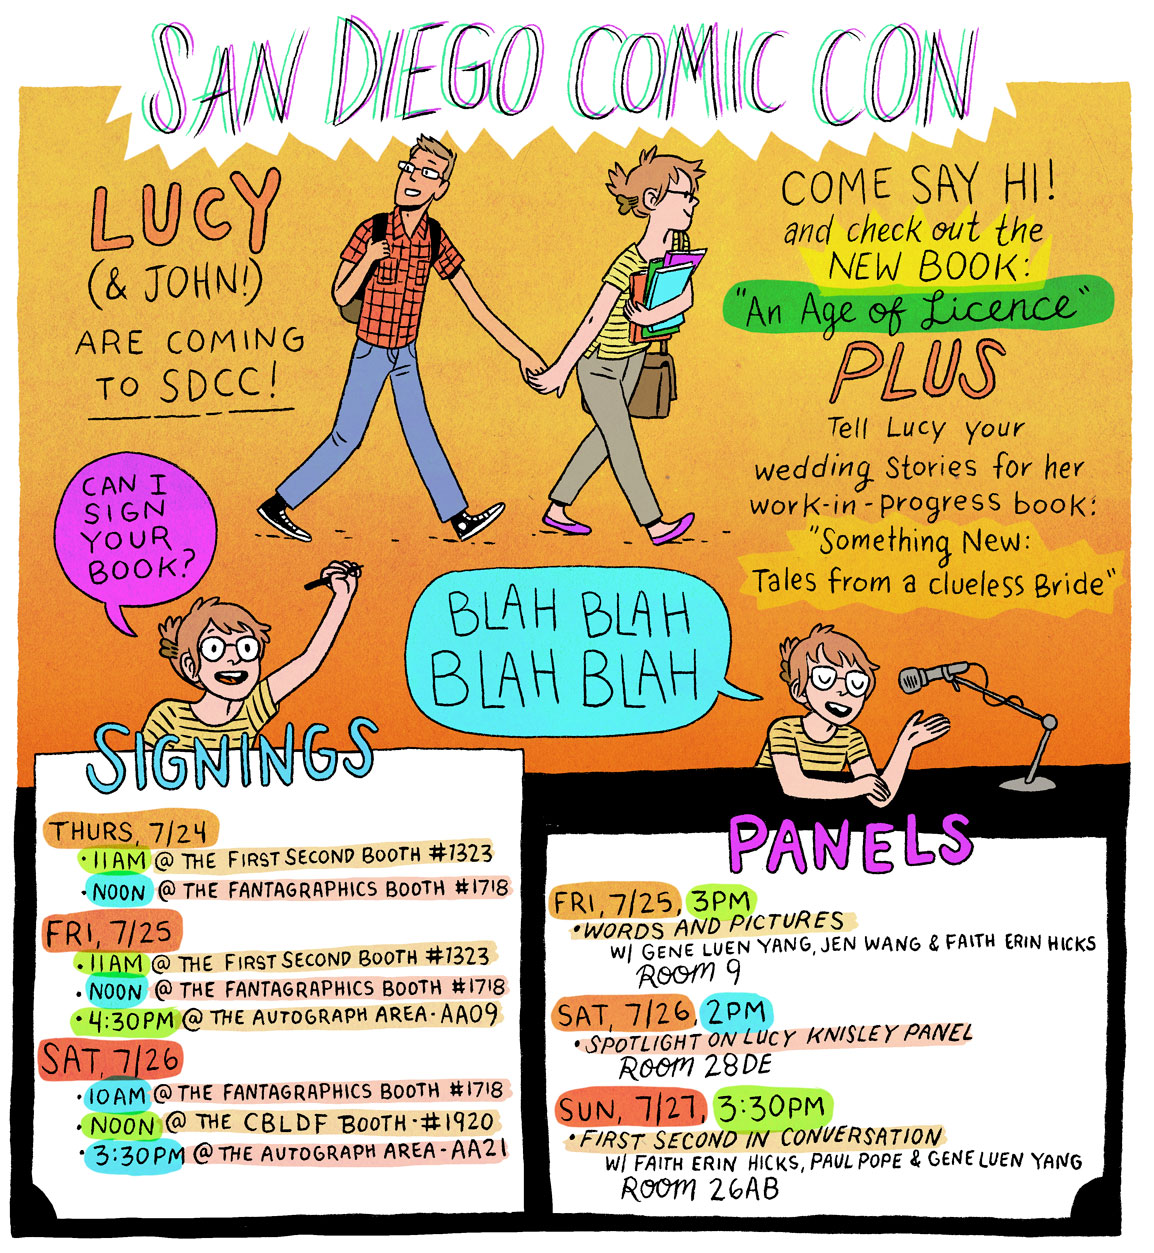 SDCC! I've never been! It's going to be a busy week, but I hope I get to eat all the food and meet lots of friendly people. A nice (if hectic!) change of pace from wedding planning and teaching and working! Please come say hello and speak to me in a soothing voice— I'm working on four books in various stages of completion, I teach a comics camp for 8-10 year olds, and my wedding is in less than two months. *sweatdrop*